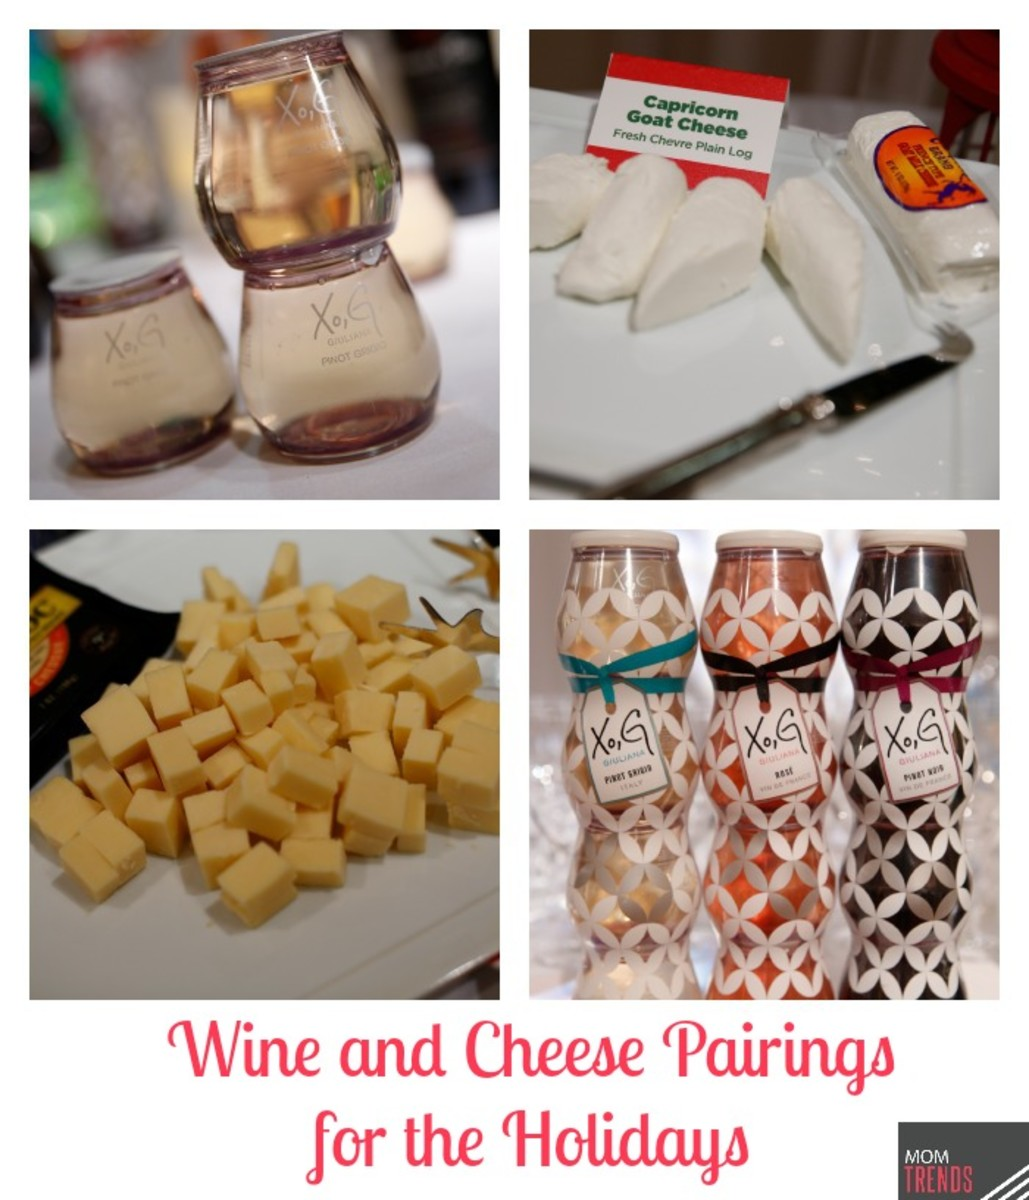 Wine and Cheese Pairings for the Holidays